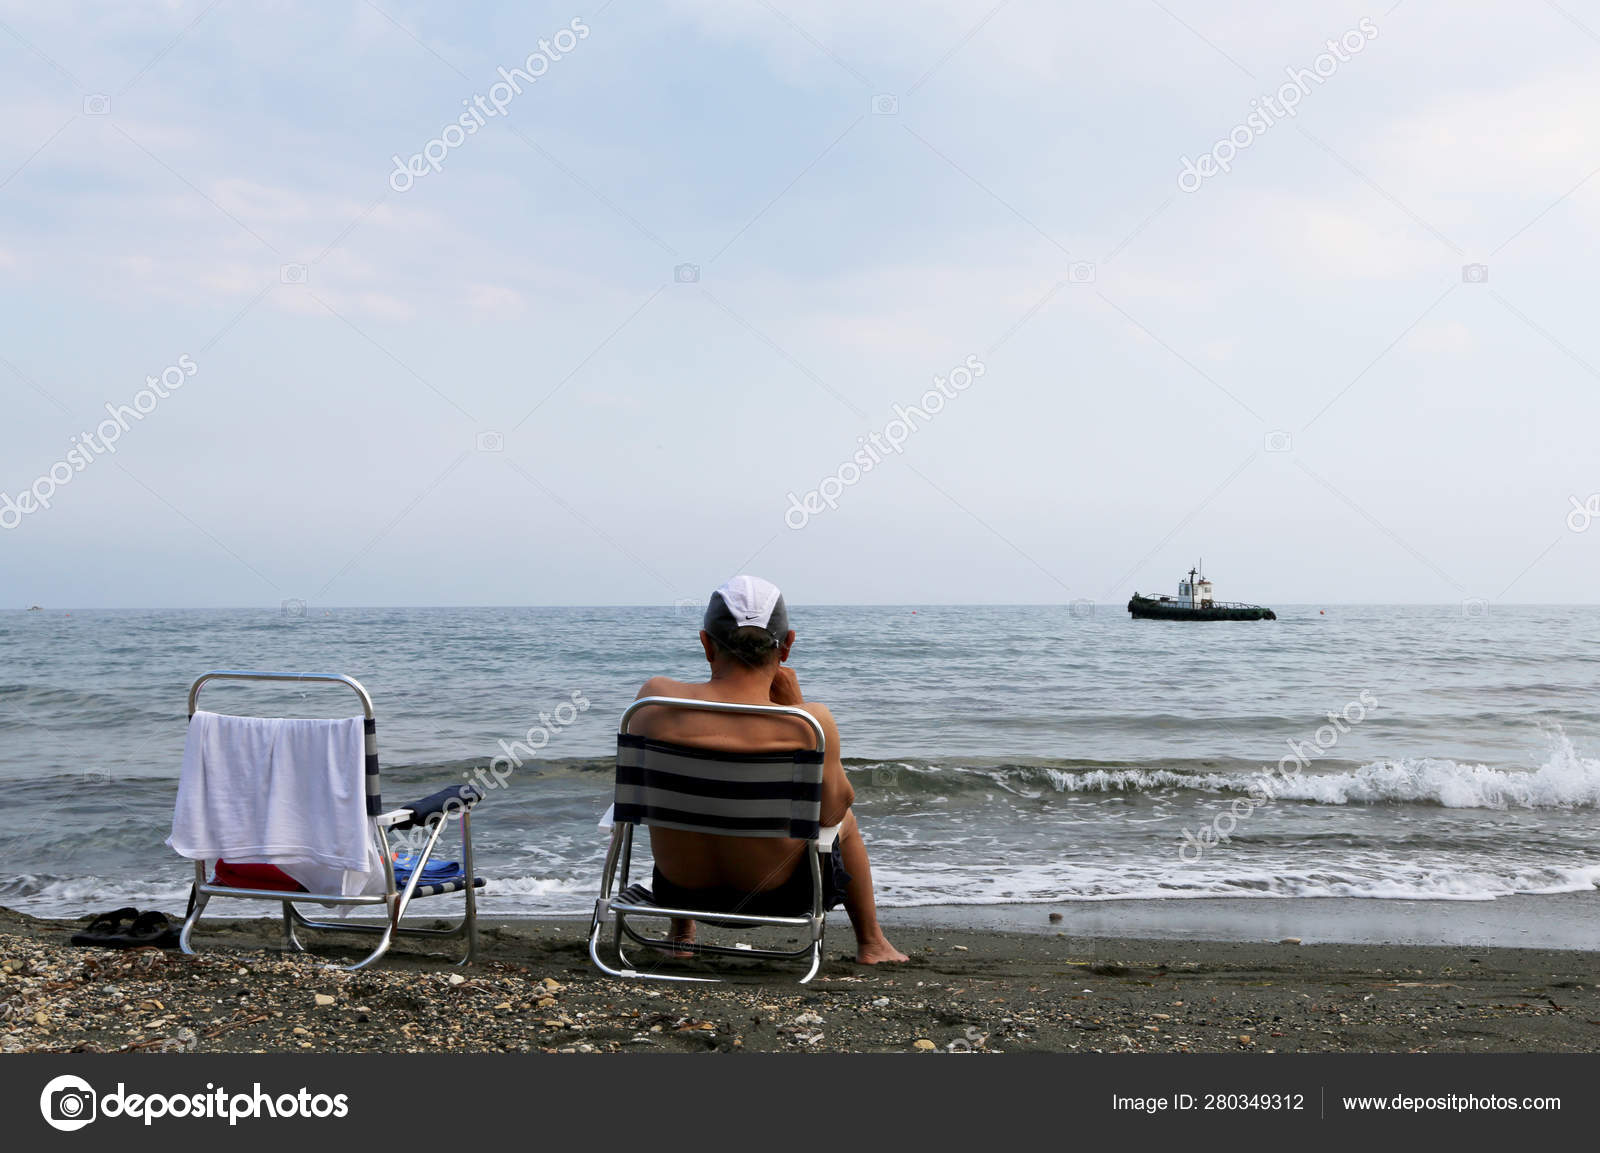 Man Sitting On Chair Is Watching An Old Ship Sailing On Sea Stock Photo C Oleksandr75 280349312